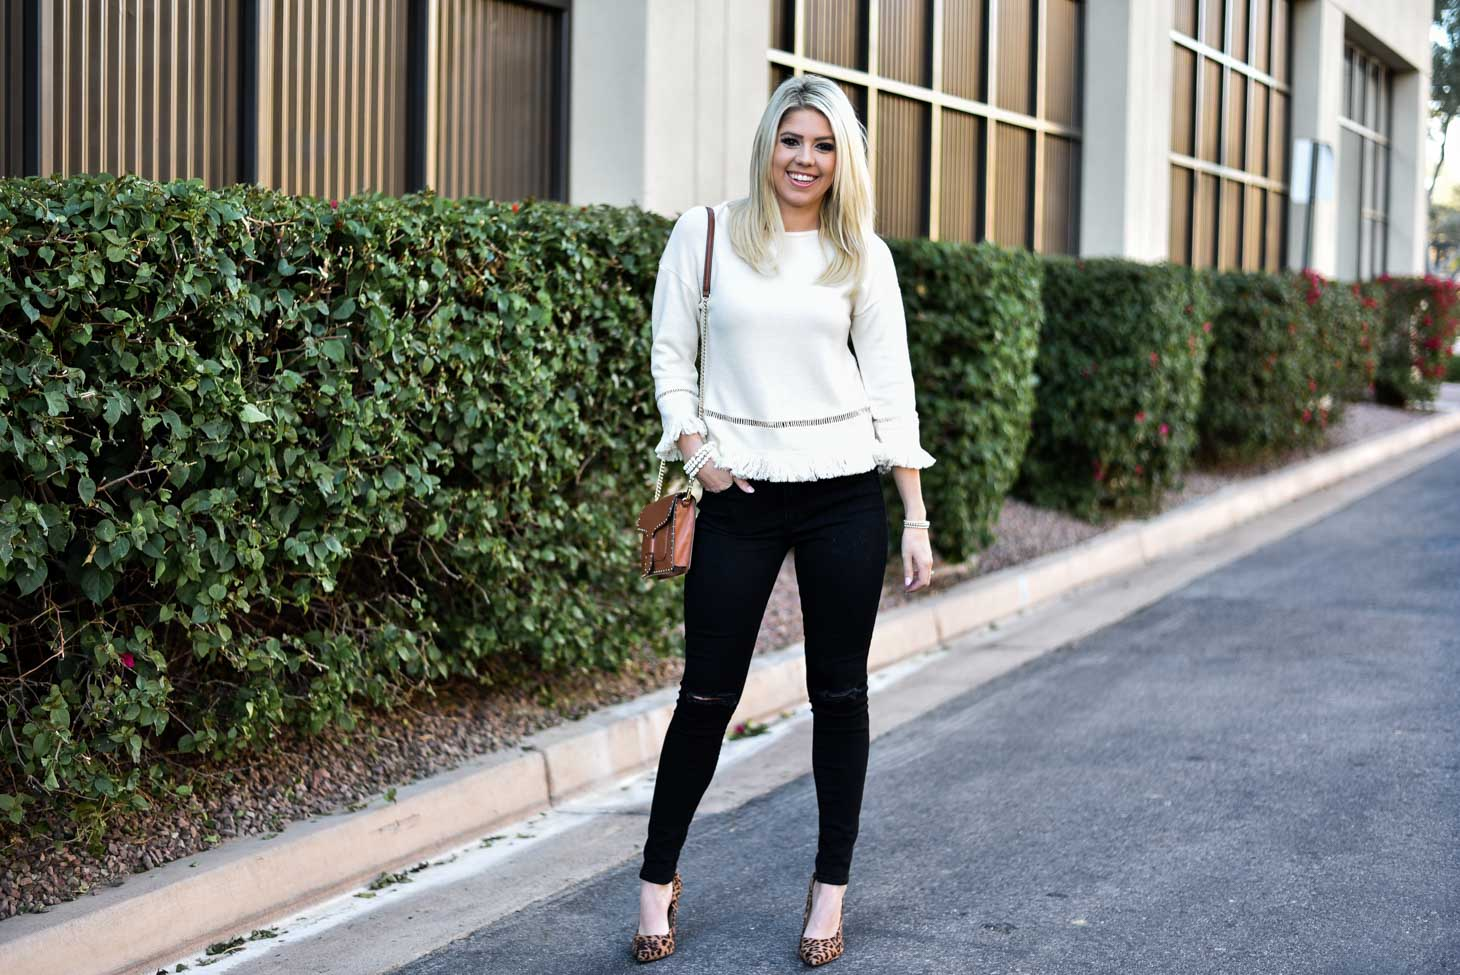 Erin Elizabeth of Wink and a Twirl in Cream Fringe Top by VIS